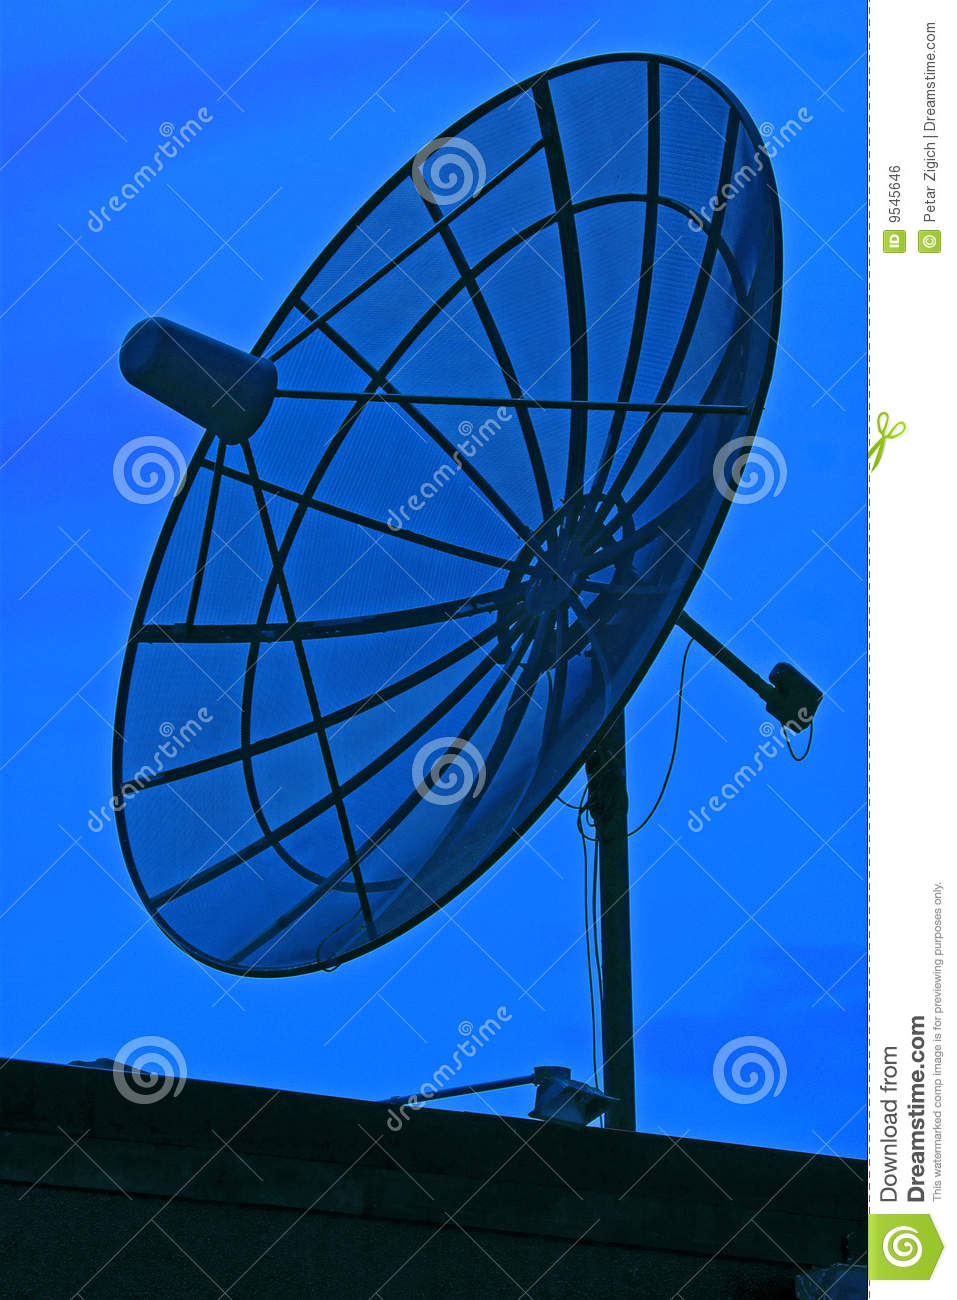 how to set up a sky satellite dish in france